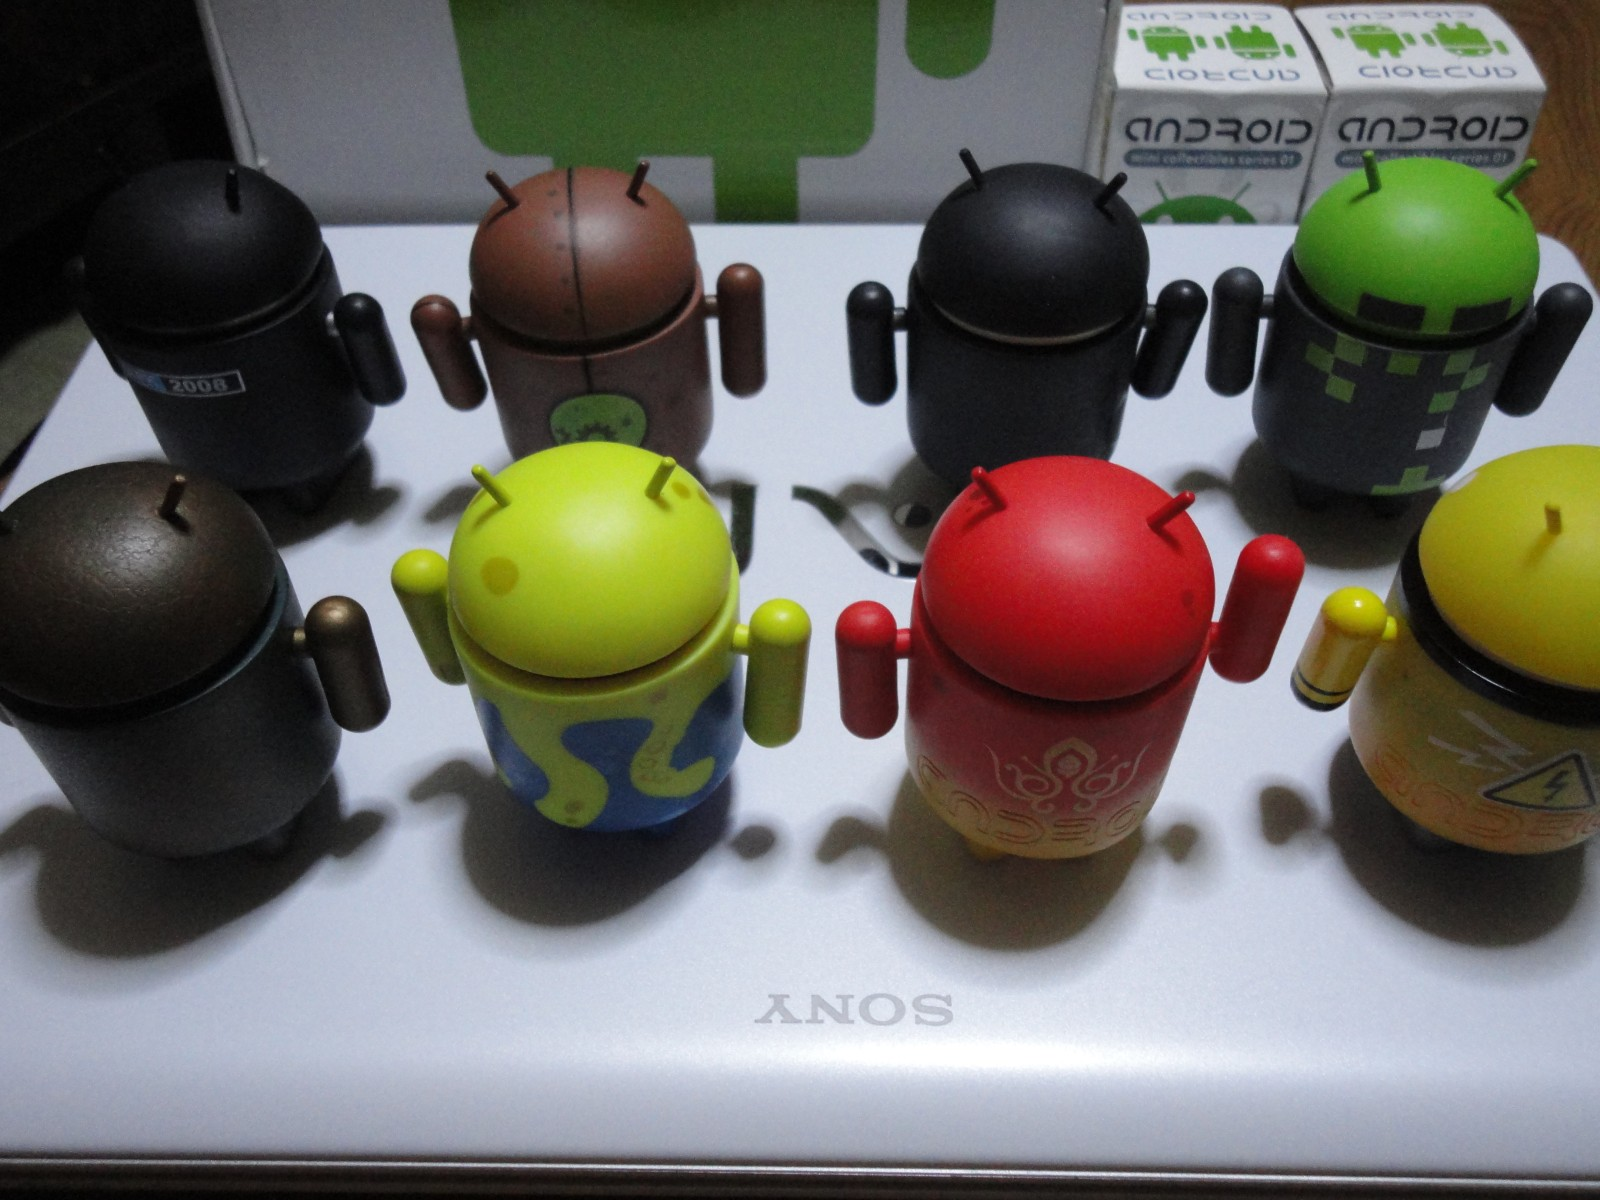 android_mini_collectibles01_03.jpg